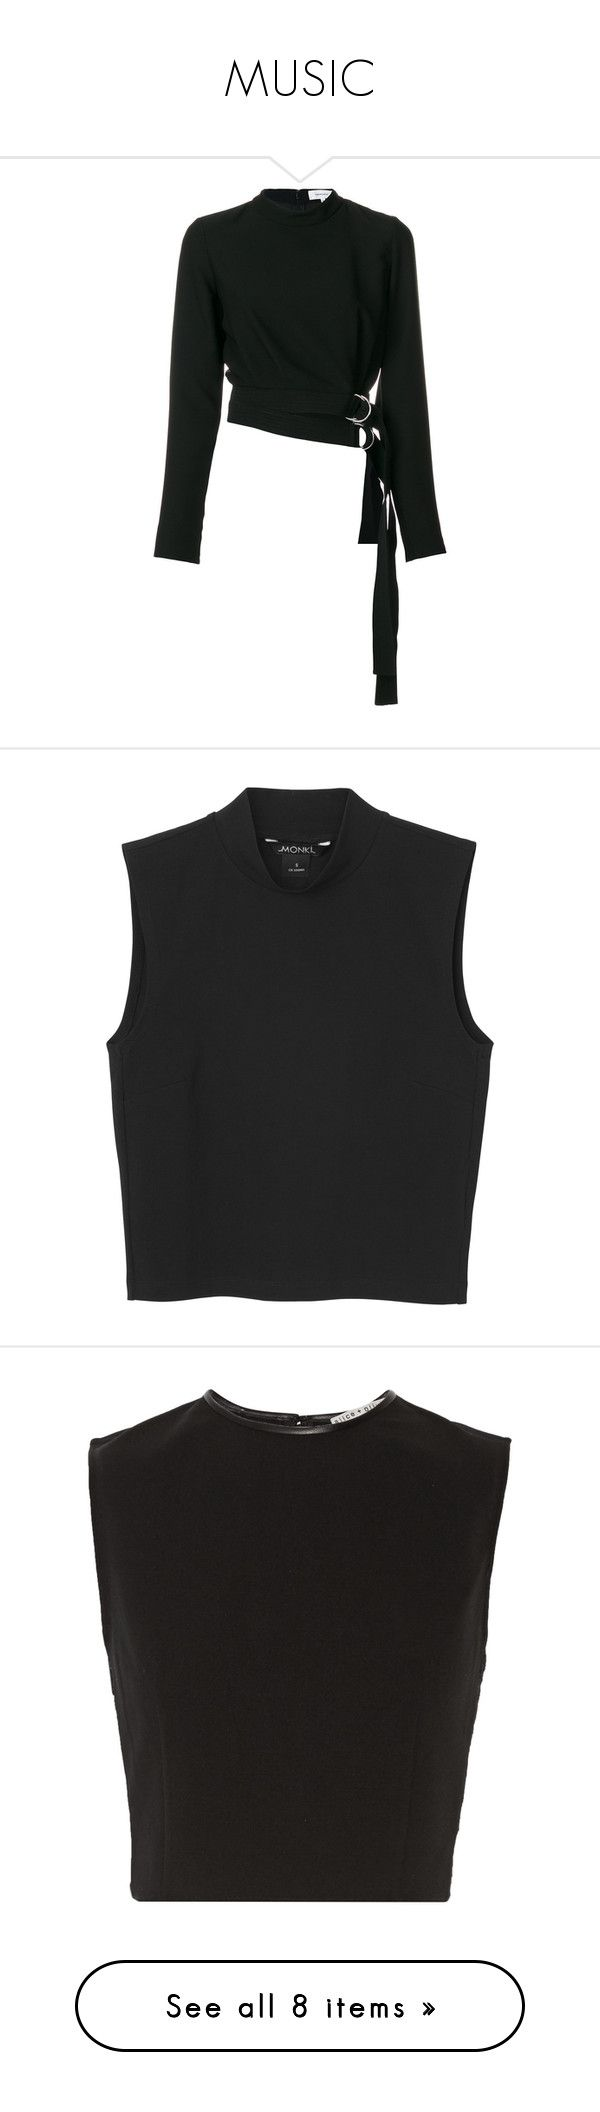 """""""MUSIC"""" by hoangkimsa ❤ liked on Polyvore featuring tops, black, roll neck top, belted top, carven top, shirts, crop tops, tank tops, black magic and shirt crop top"""